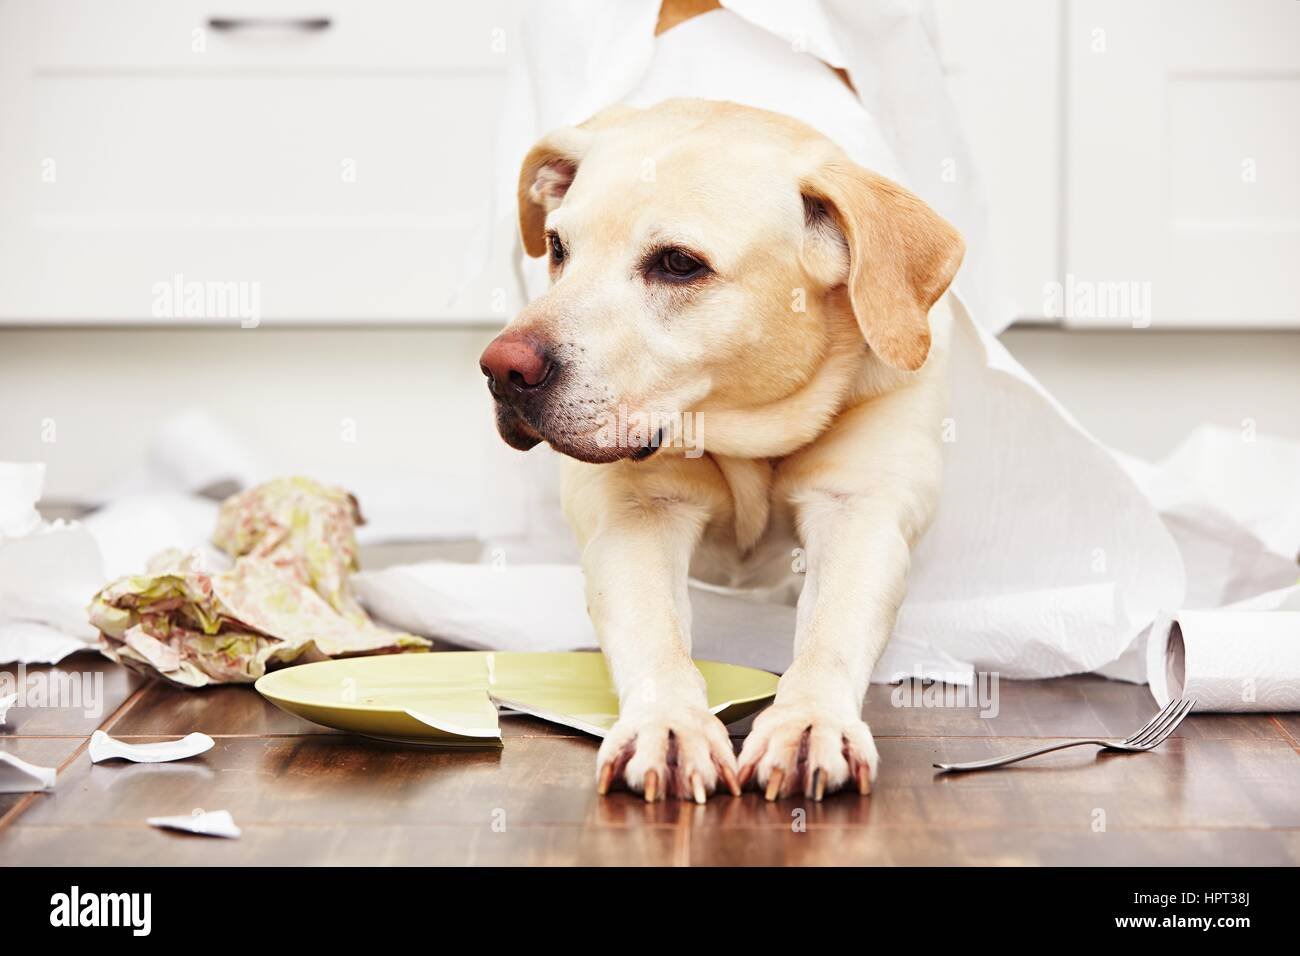 Naughty dog - Lying dog in the middle of mess in the kitchen. Stock Photo